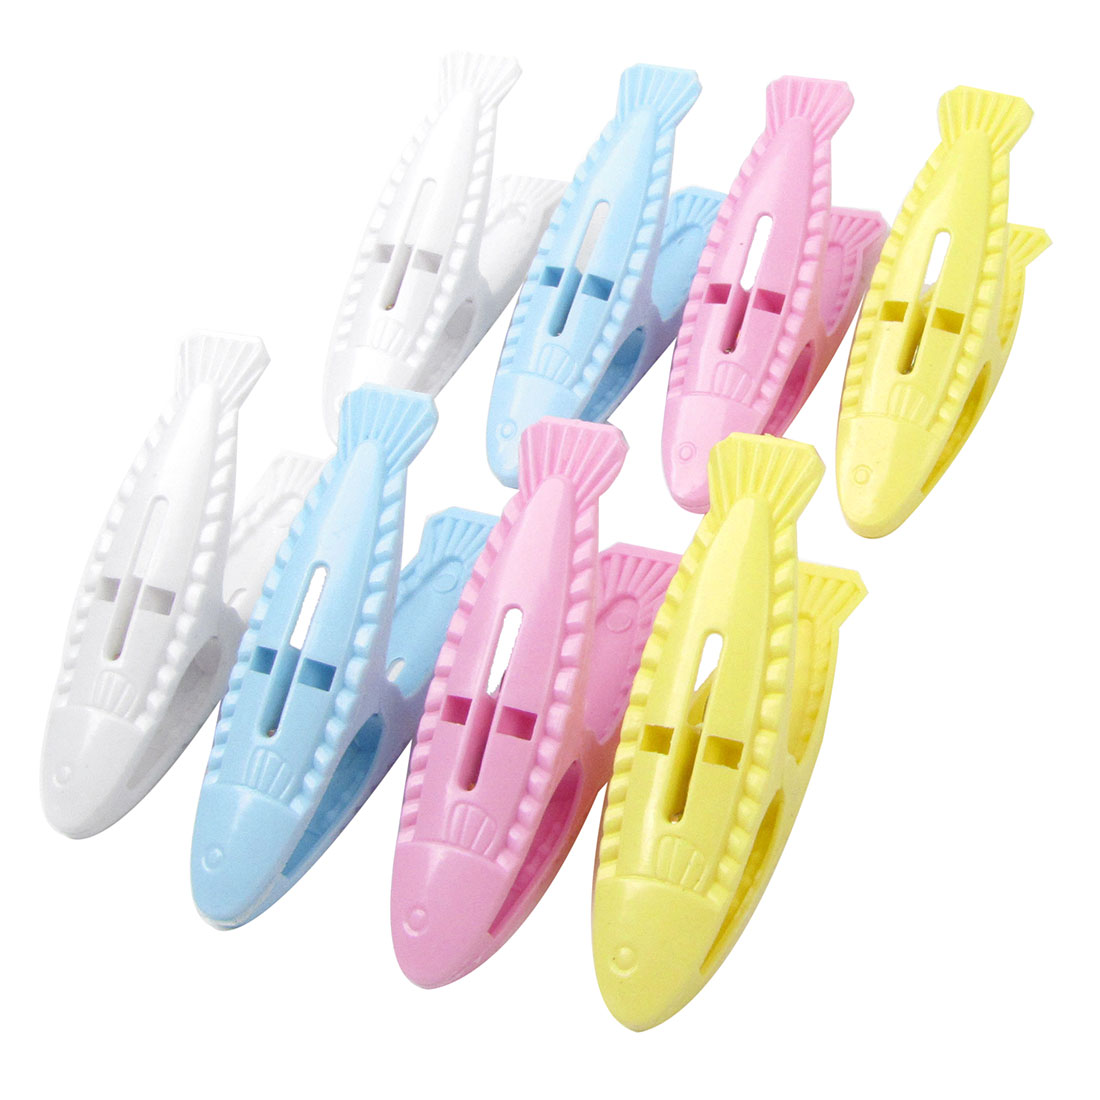 8 Pcs Colorful Fish Shape Plastic Clothespins Clothes Clips Pegs